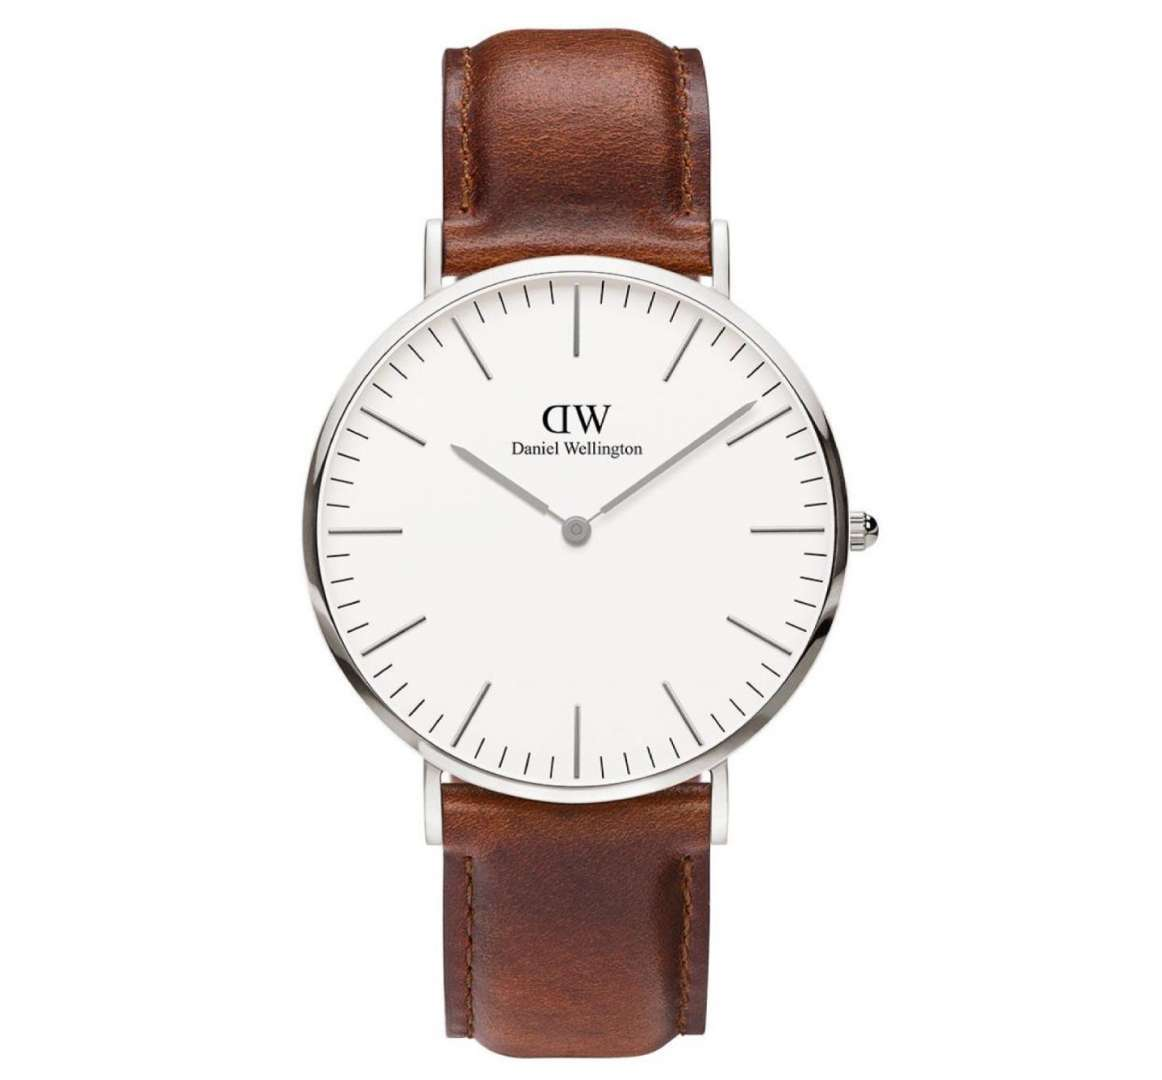 שעון יד אנלוגי daniel wellington 0607dw דניאל וולינגטון